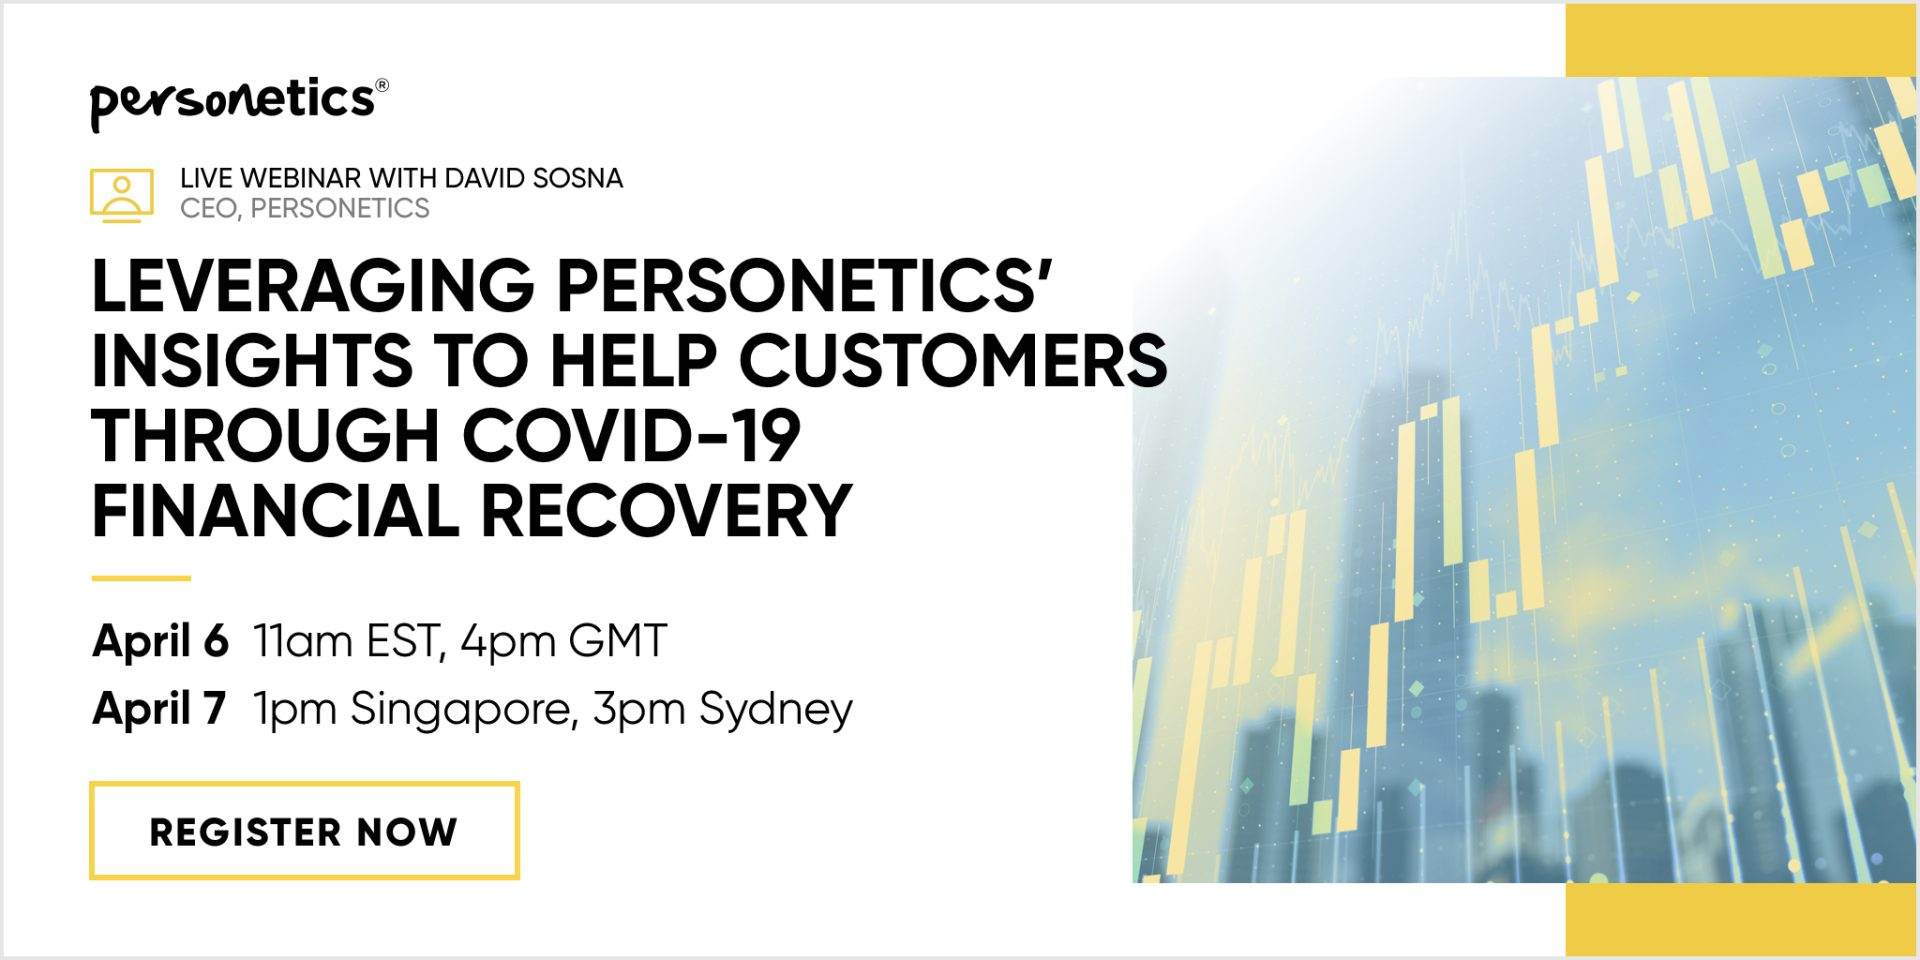 [Webinar Replay] Leveraging Personetics' Insights to Help Customers Through COVID-19 Financial Recovery